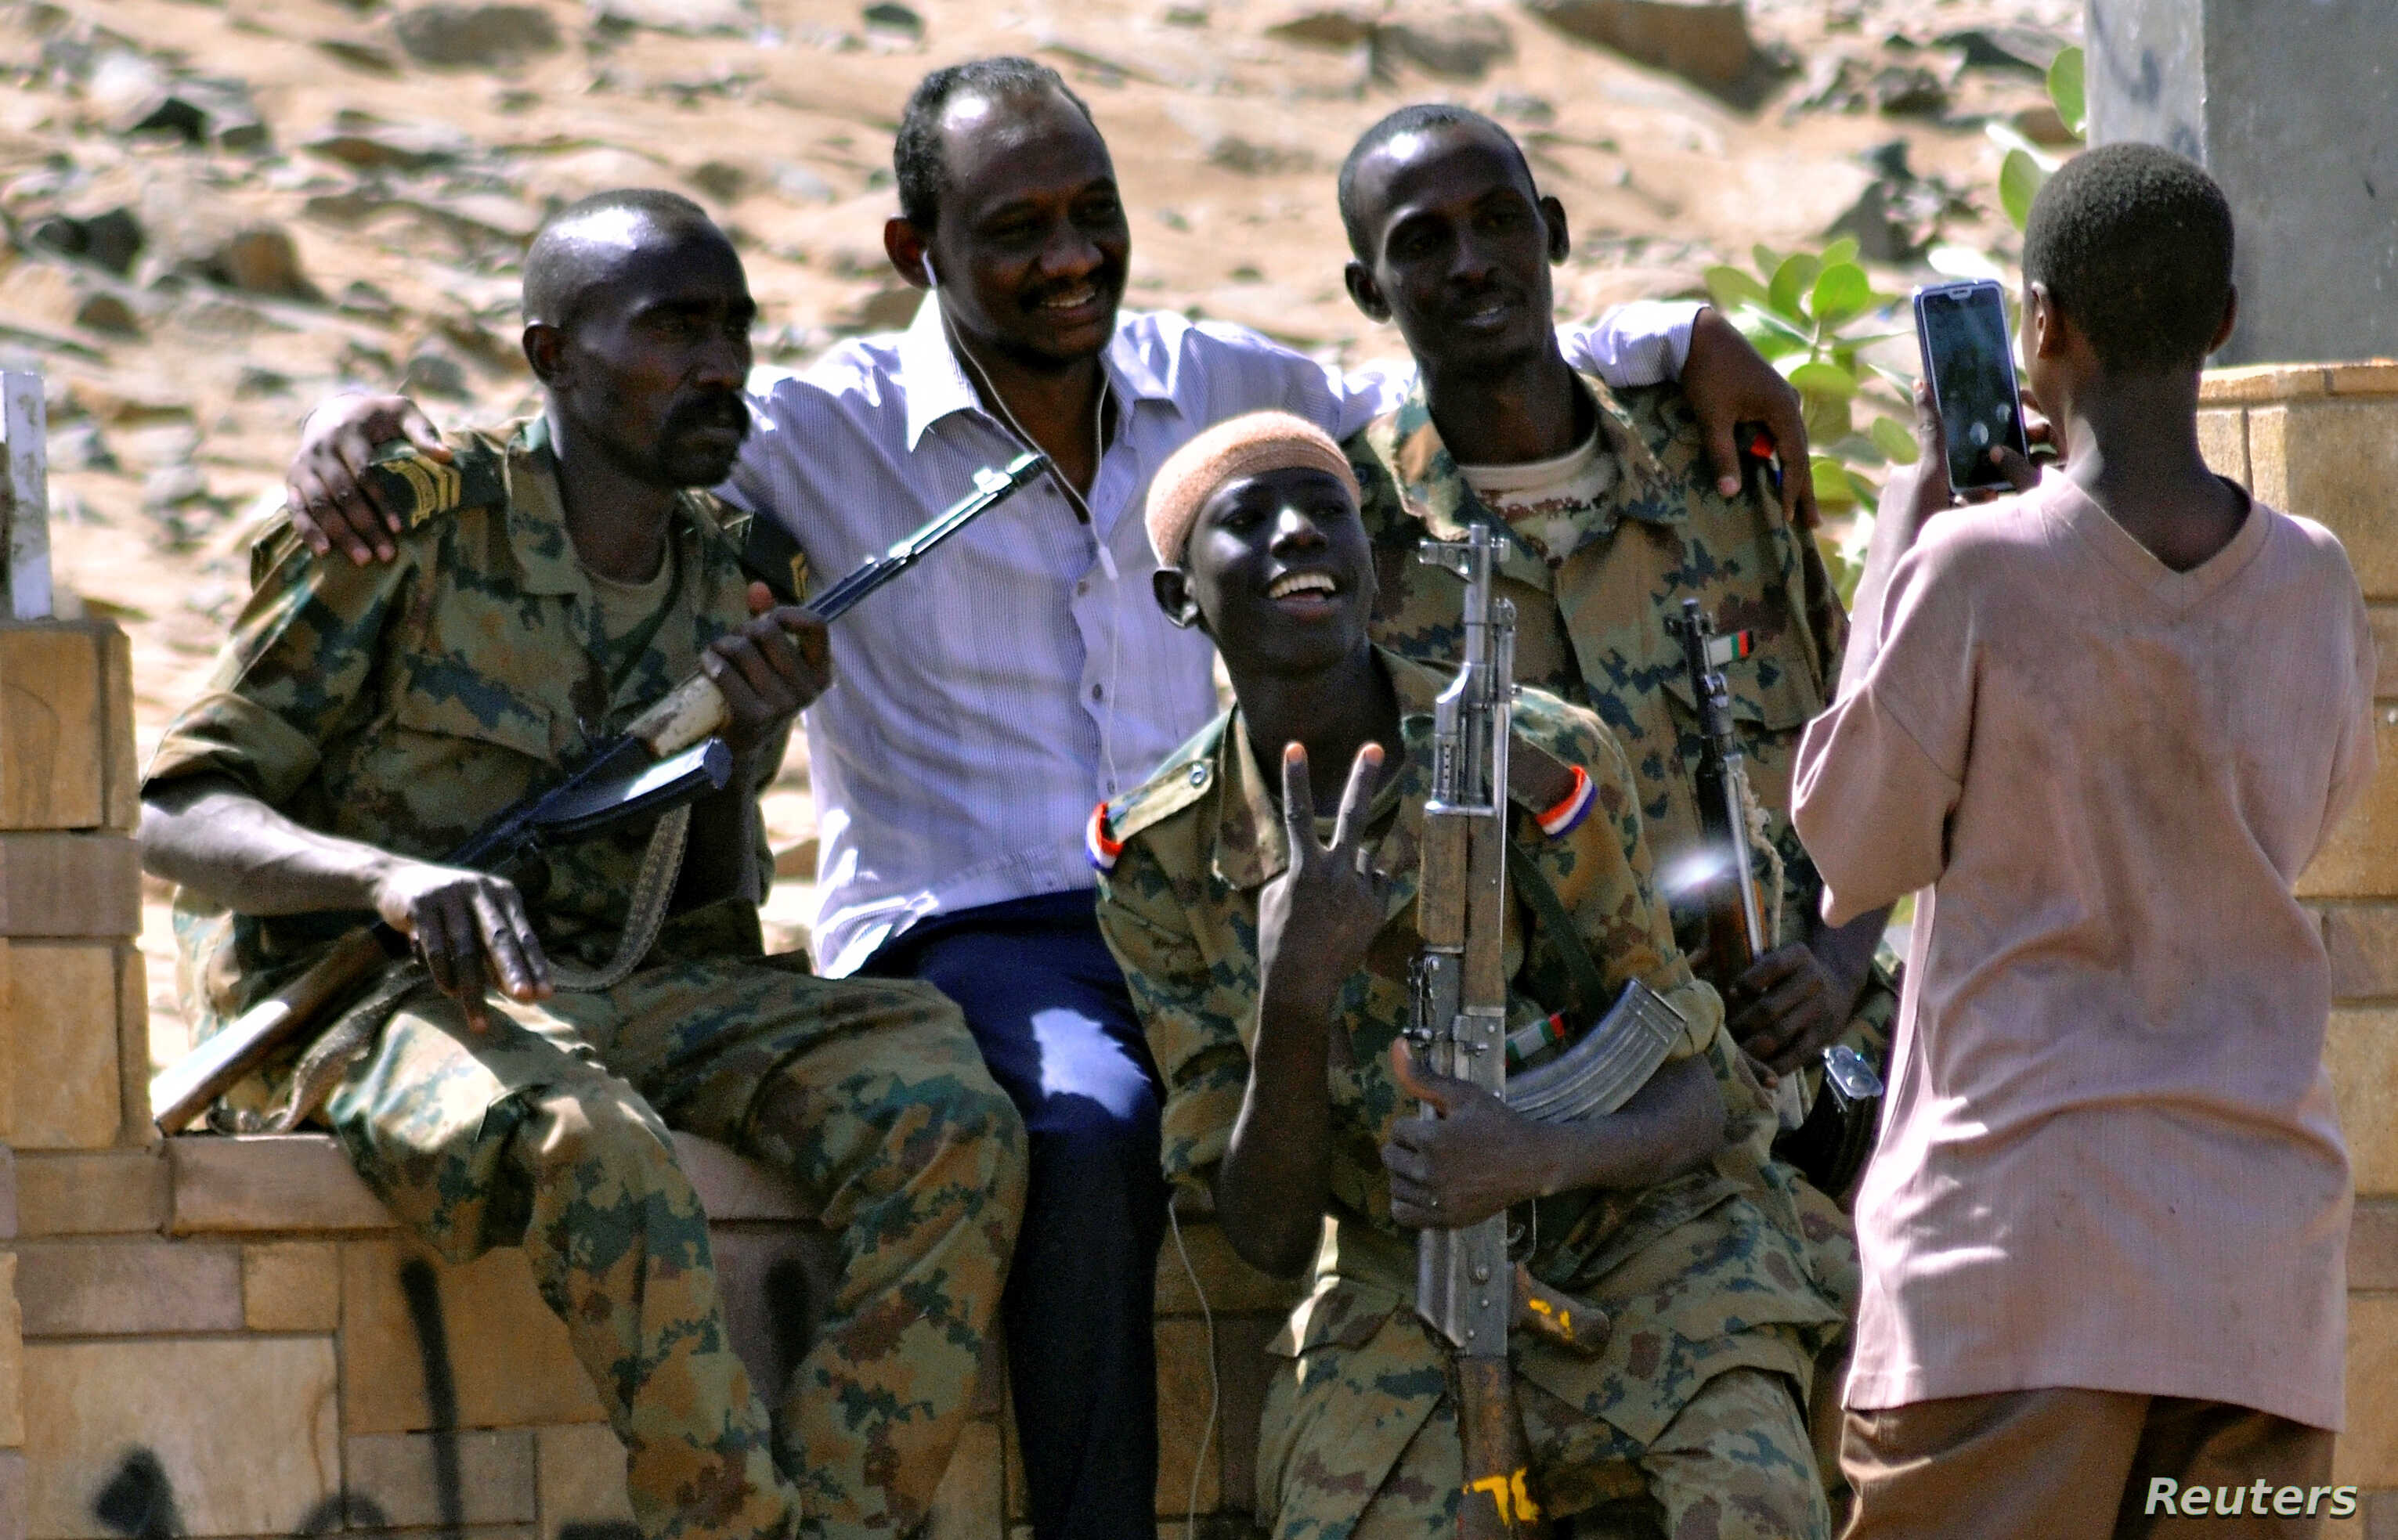 Sudanese military officers and a demonstrator pose for a photograph during celebration after Defense Minister Awad Ibn Auf stepped down as head of the country's transitional ruling military council, near the Defense Ministry in Khartoum, Sudan, April...